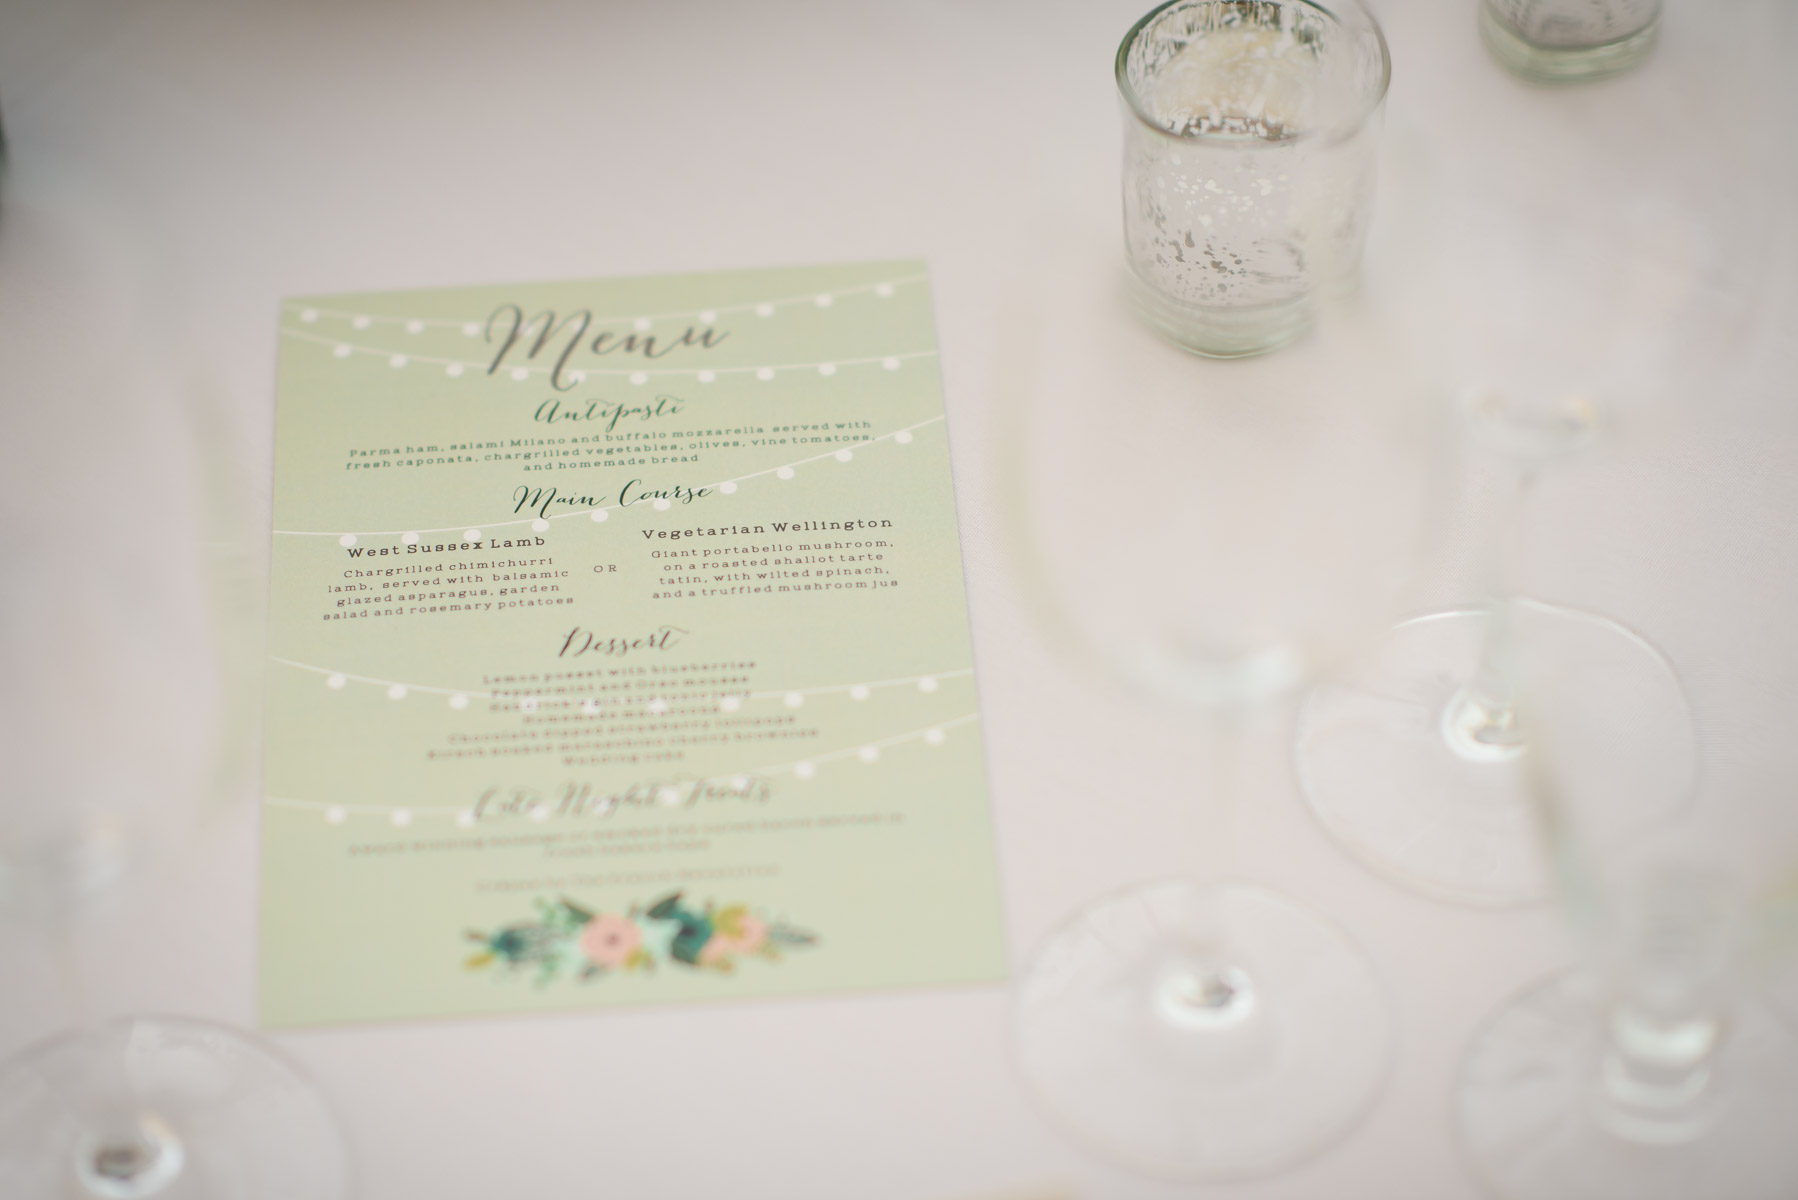 Burpham-Green-wedding-photography-10